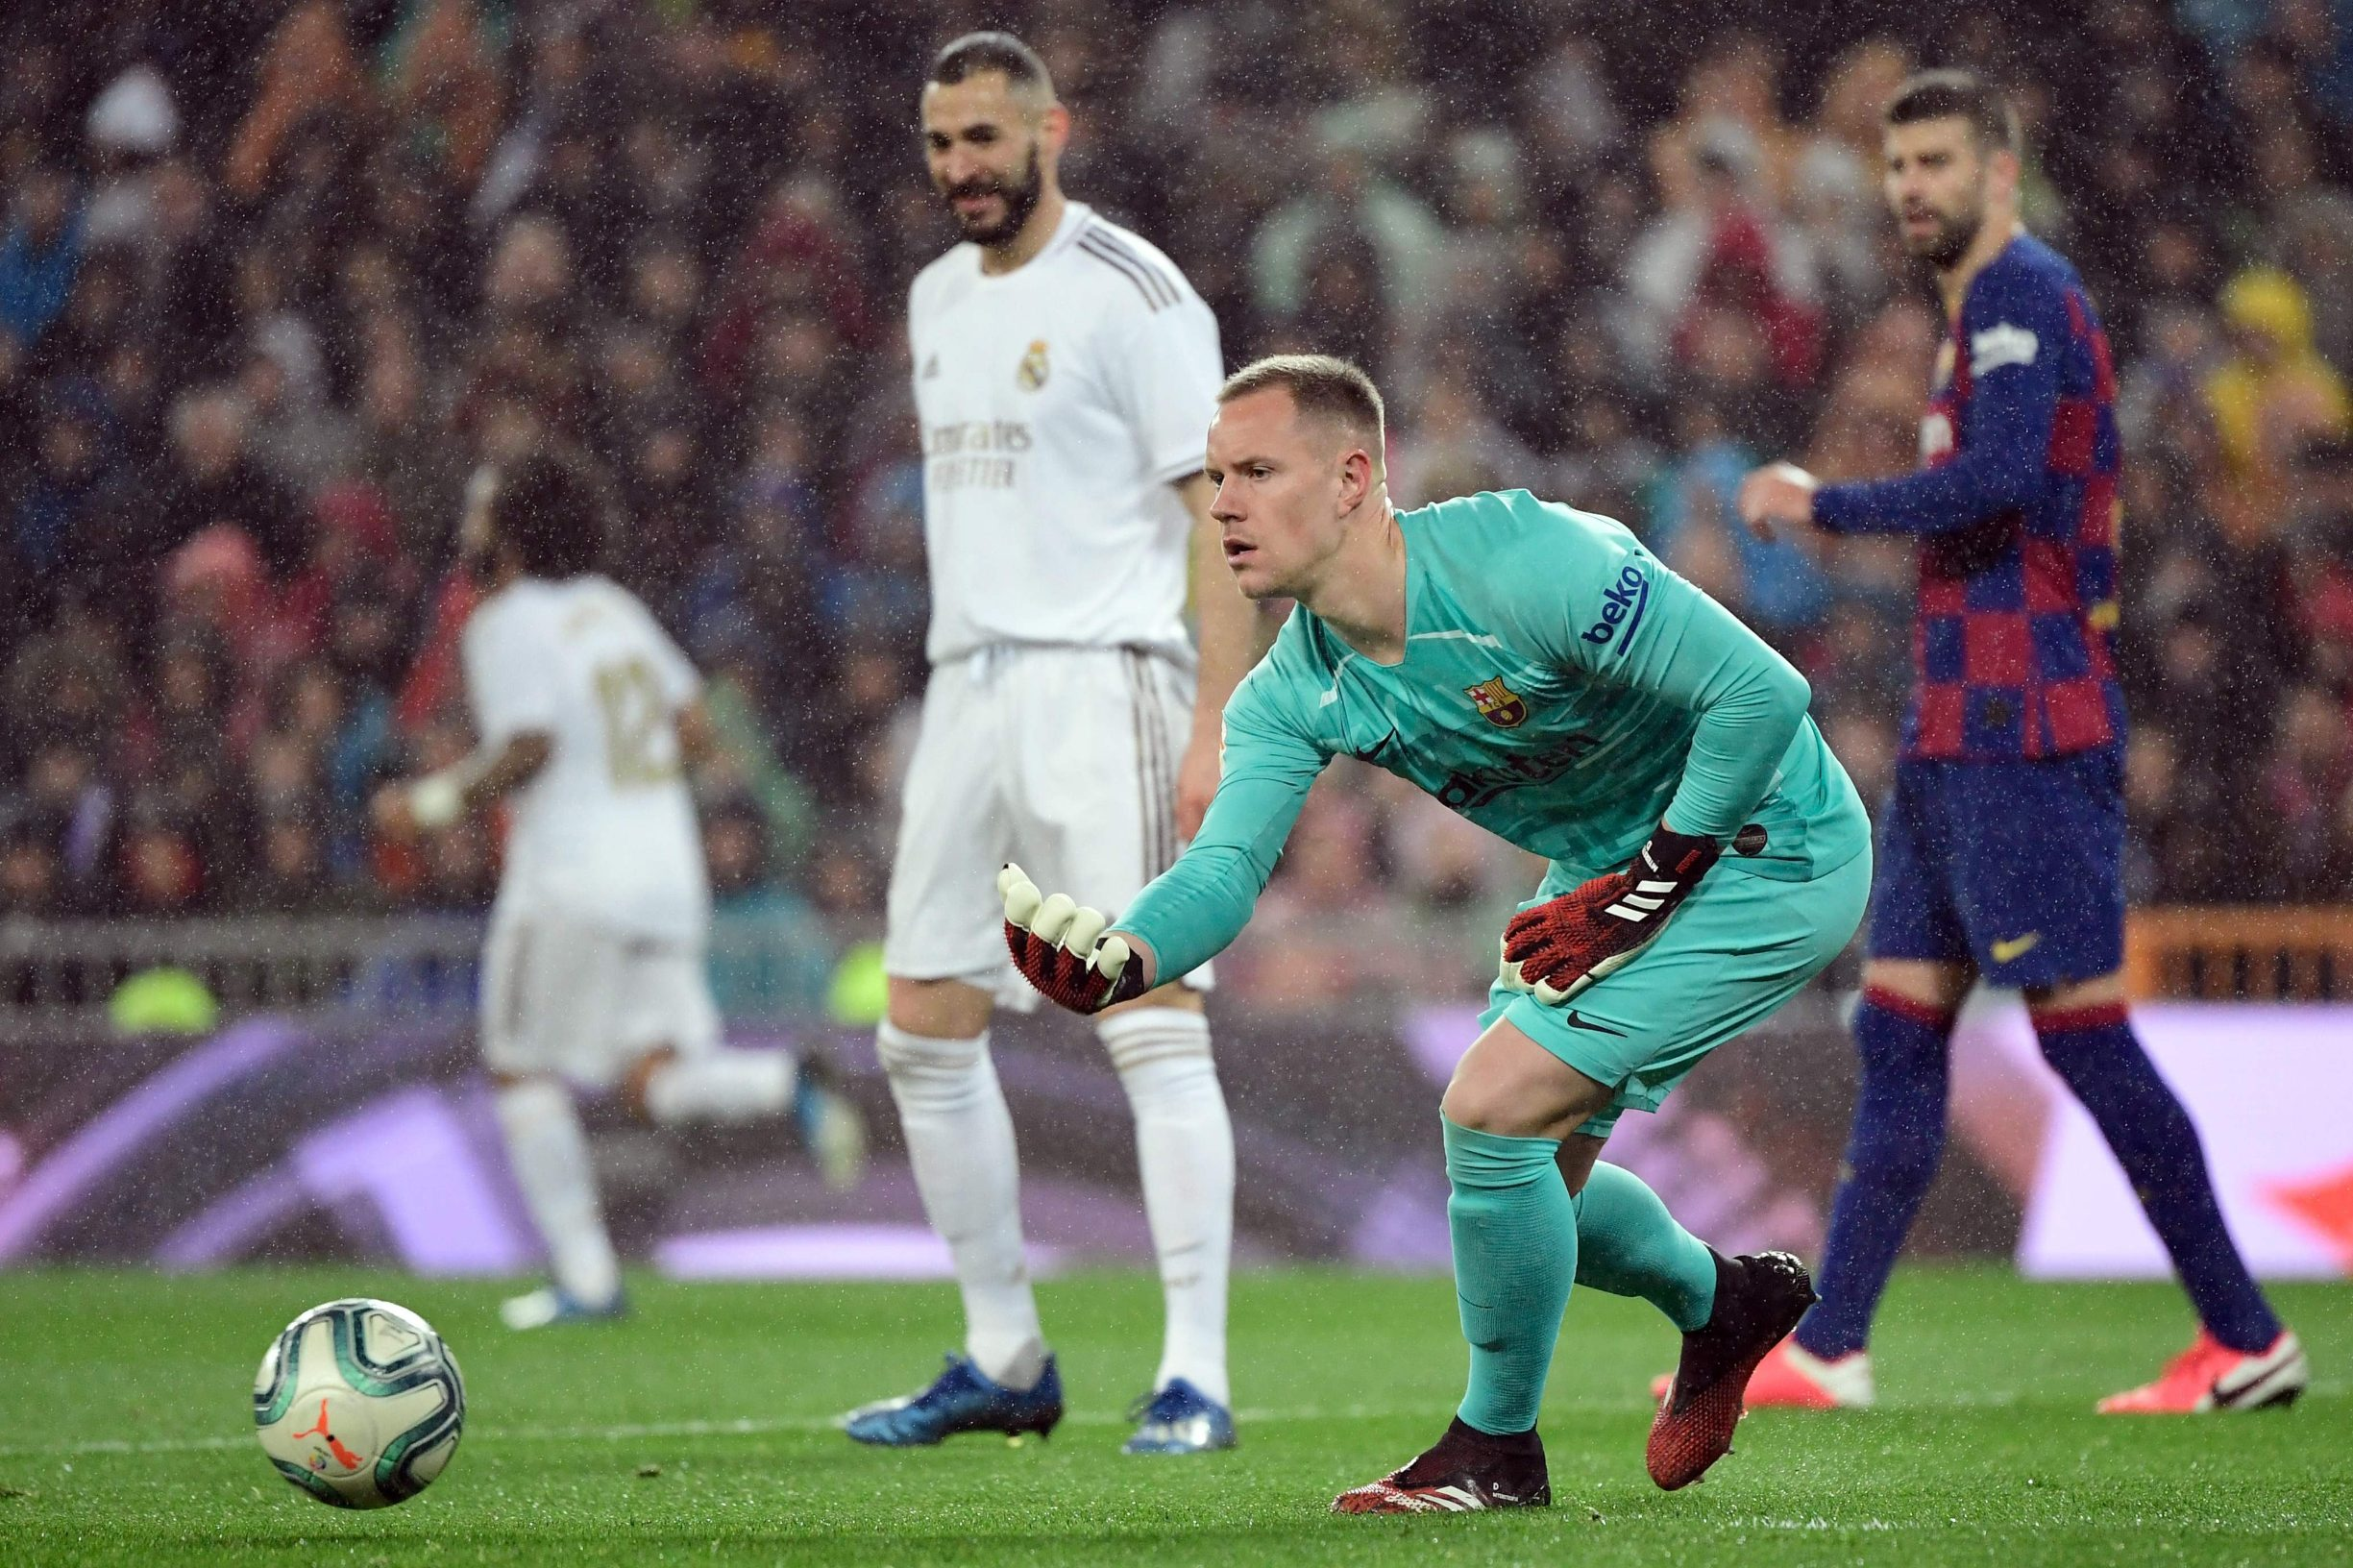 Barcelona's German goalkeeper Marc-Andre Ter Stegen hands the ball to teammates during the Spanish League football match between Real Madrid and Barcelona at the Santiago Bernabeu stadium in Madrid on March 1, 2020. (Photo by JAVIER SORIANO / AFP)